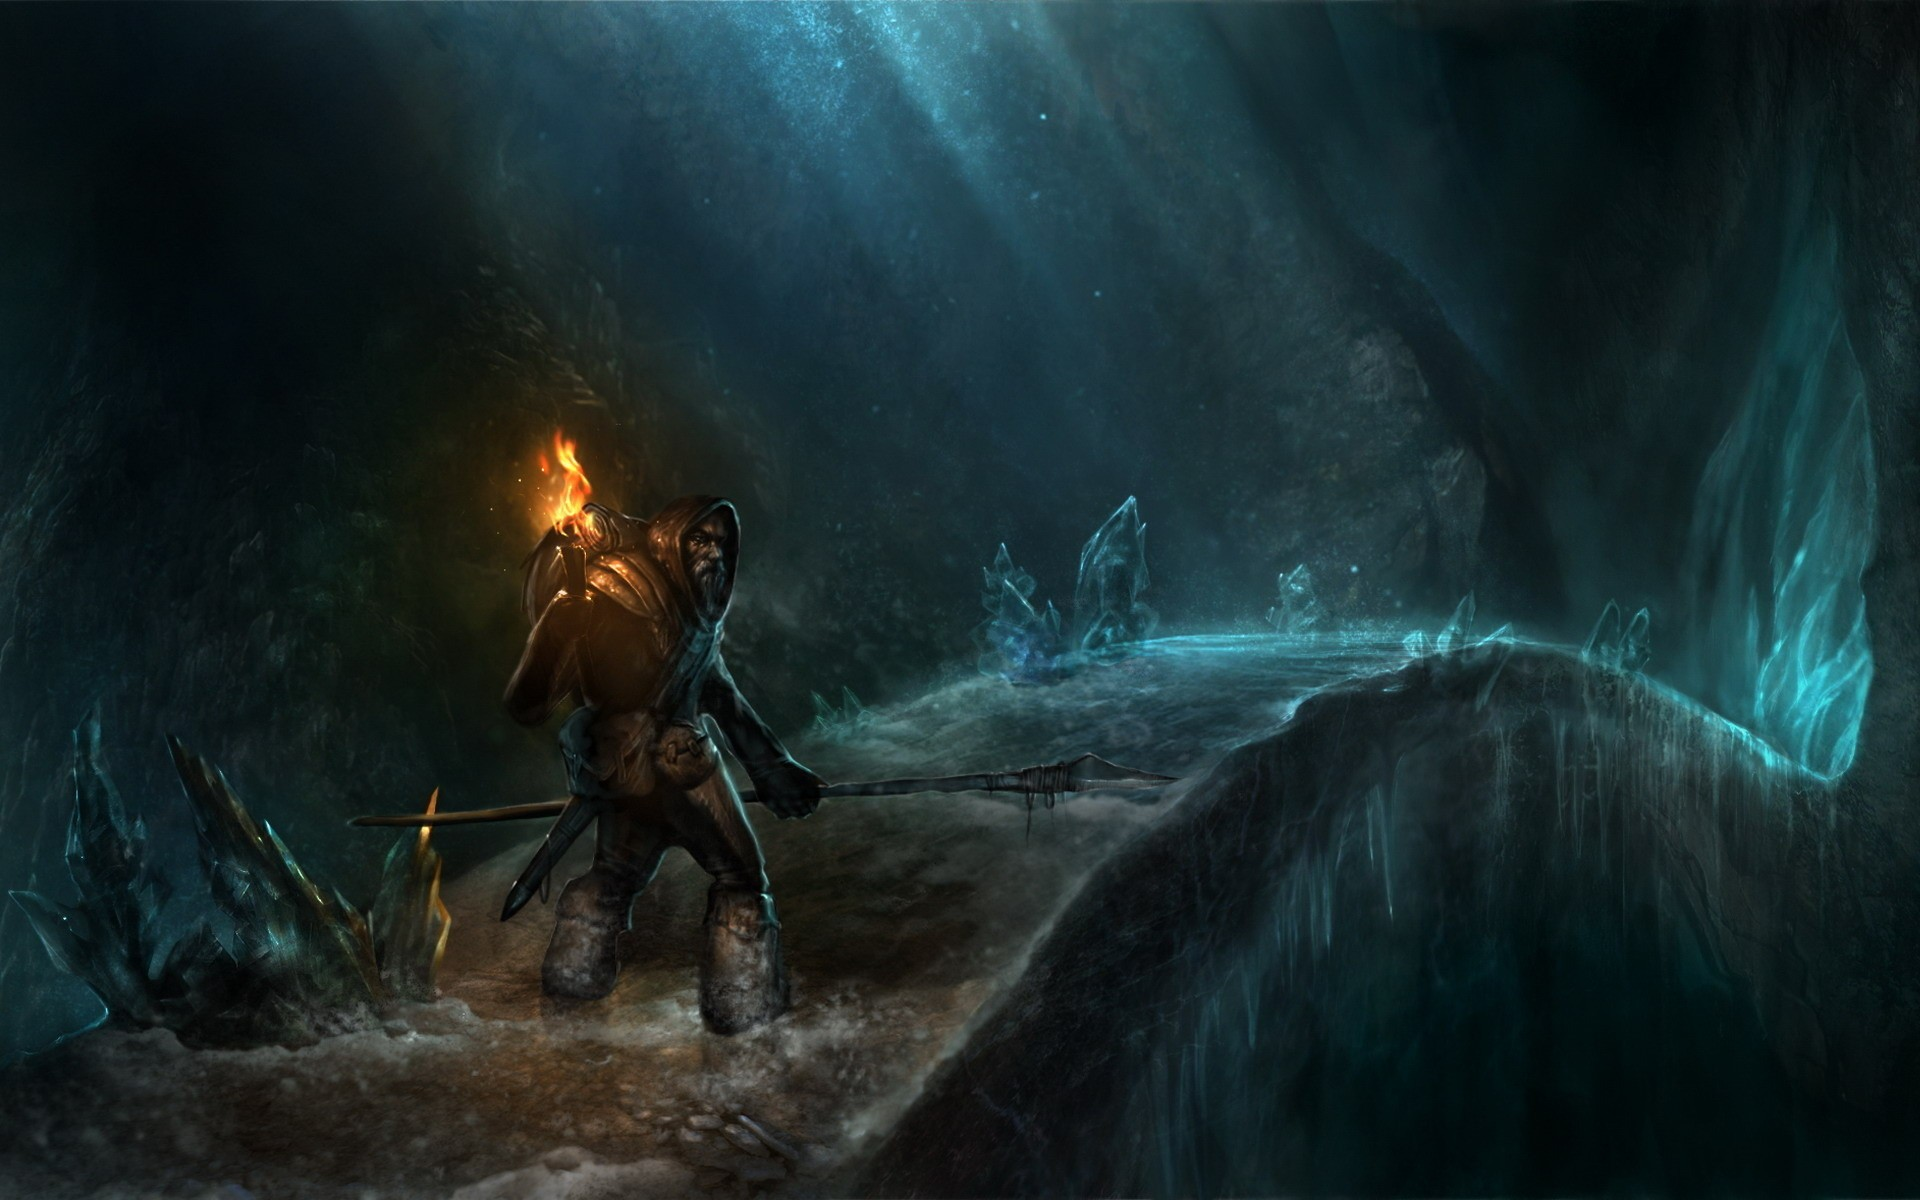 Download desktop wallpaper Dwarf in a cave with a torch, the